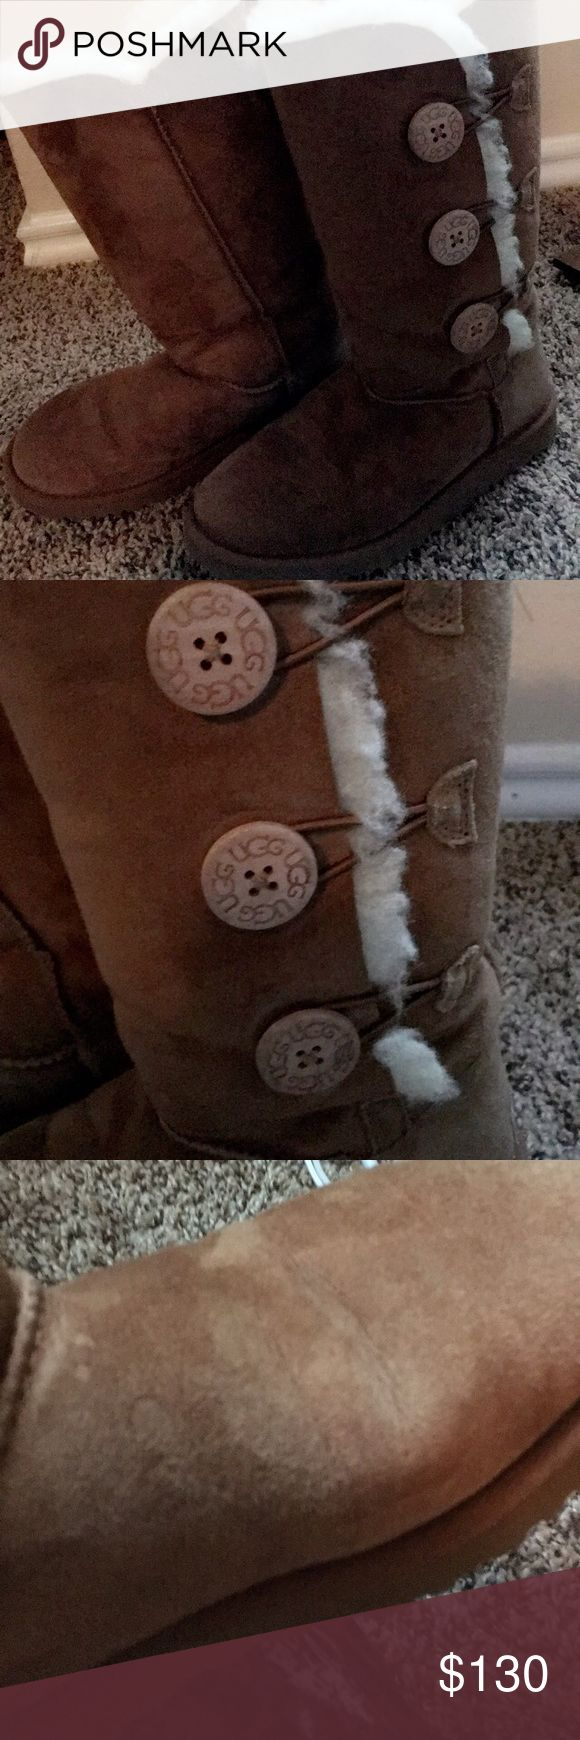 ❄️☃️UGG Bailey Button Triplet Boot, Tan, Size 5❄️ Triple button tan/beige Bailey button boots. Pre-worn condition, normal wear and tear...very comfortable & warm, look carefully at pictures! Size 5. Less than a year old UGG Shoes Winter & Rain Boots